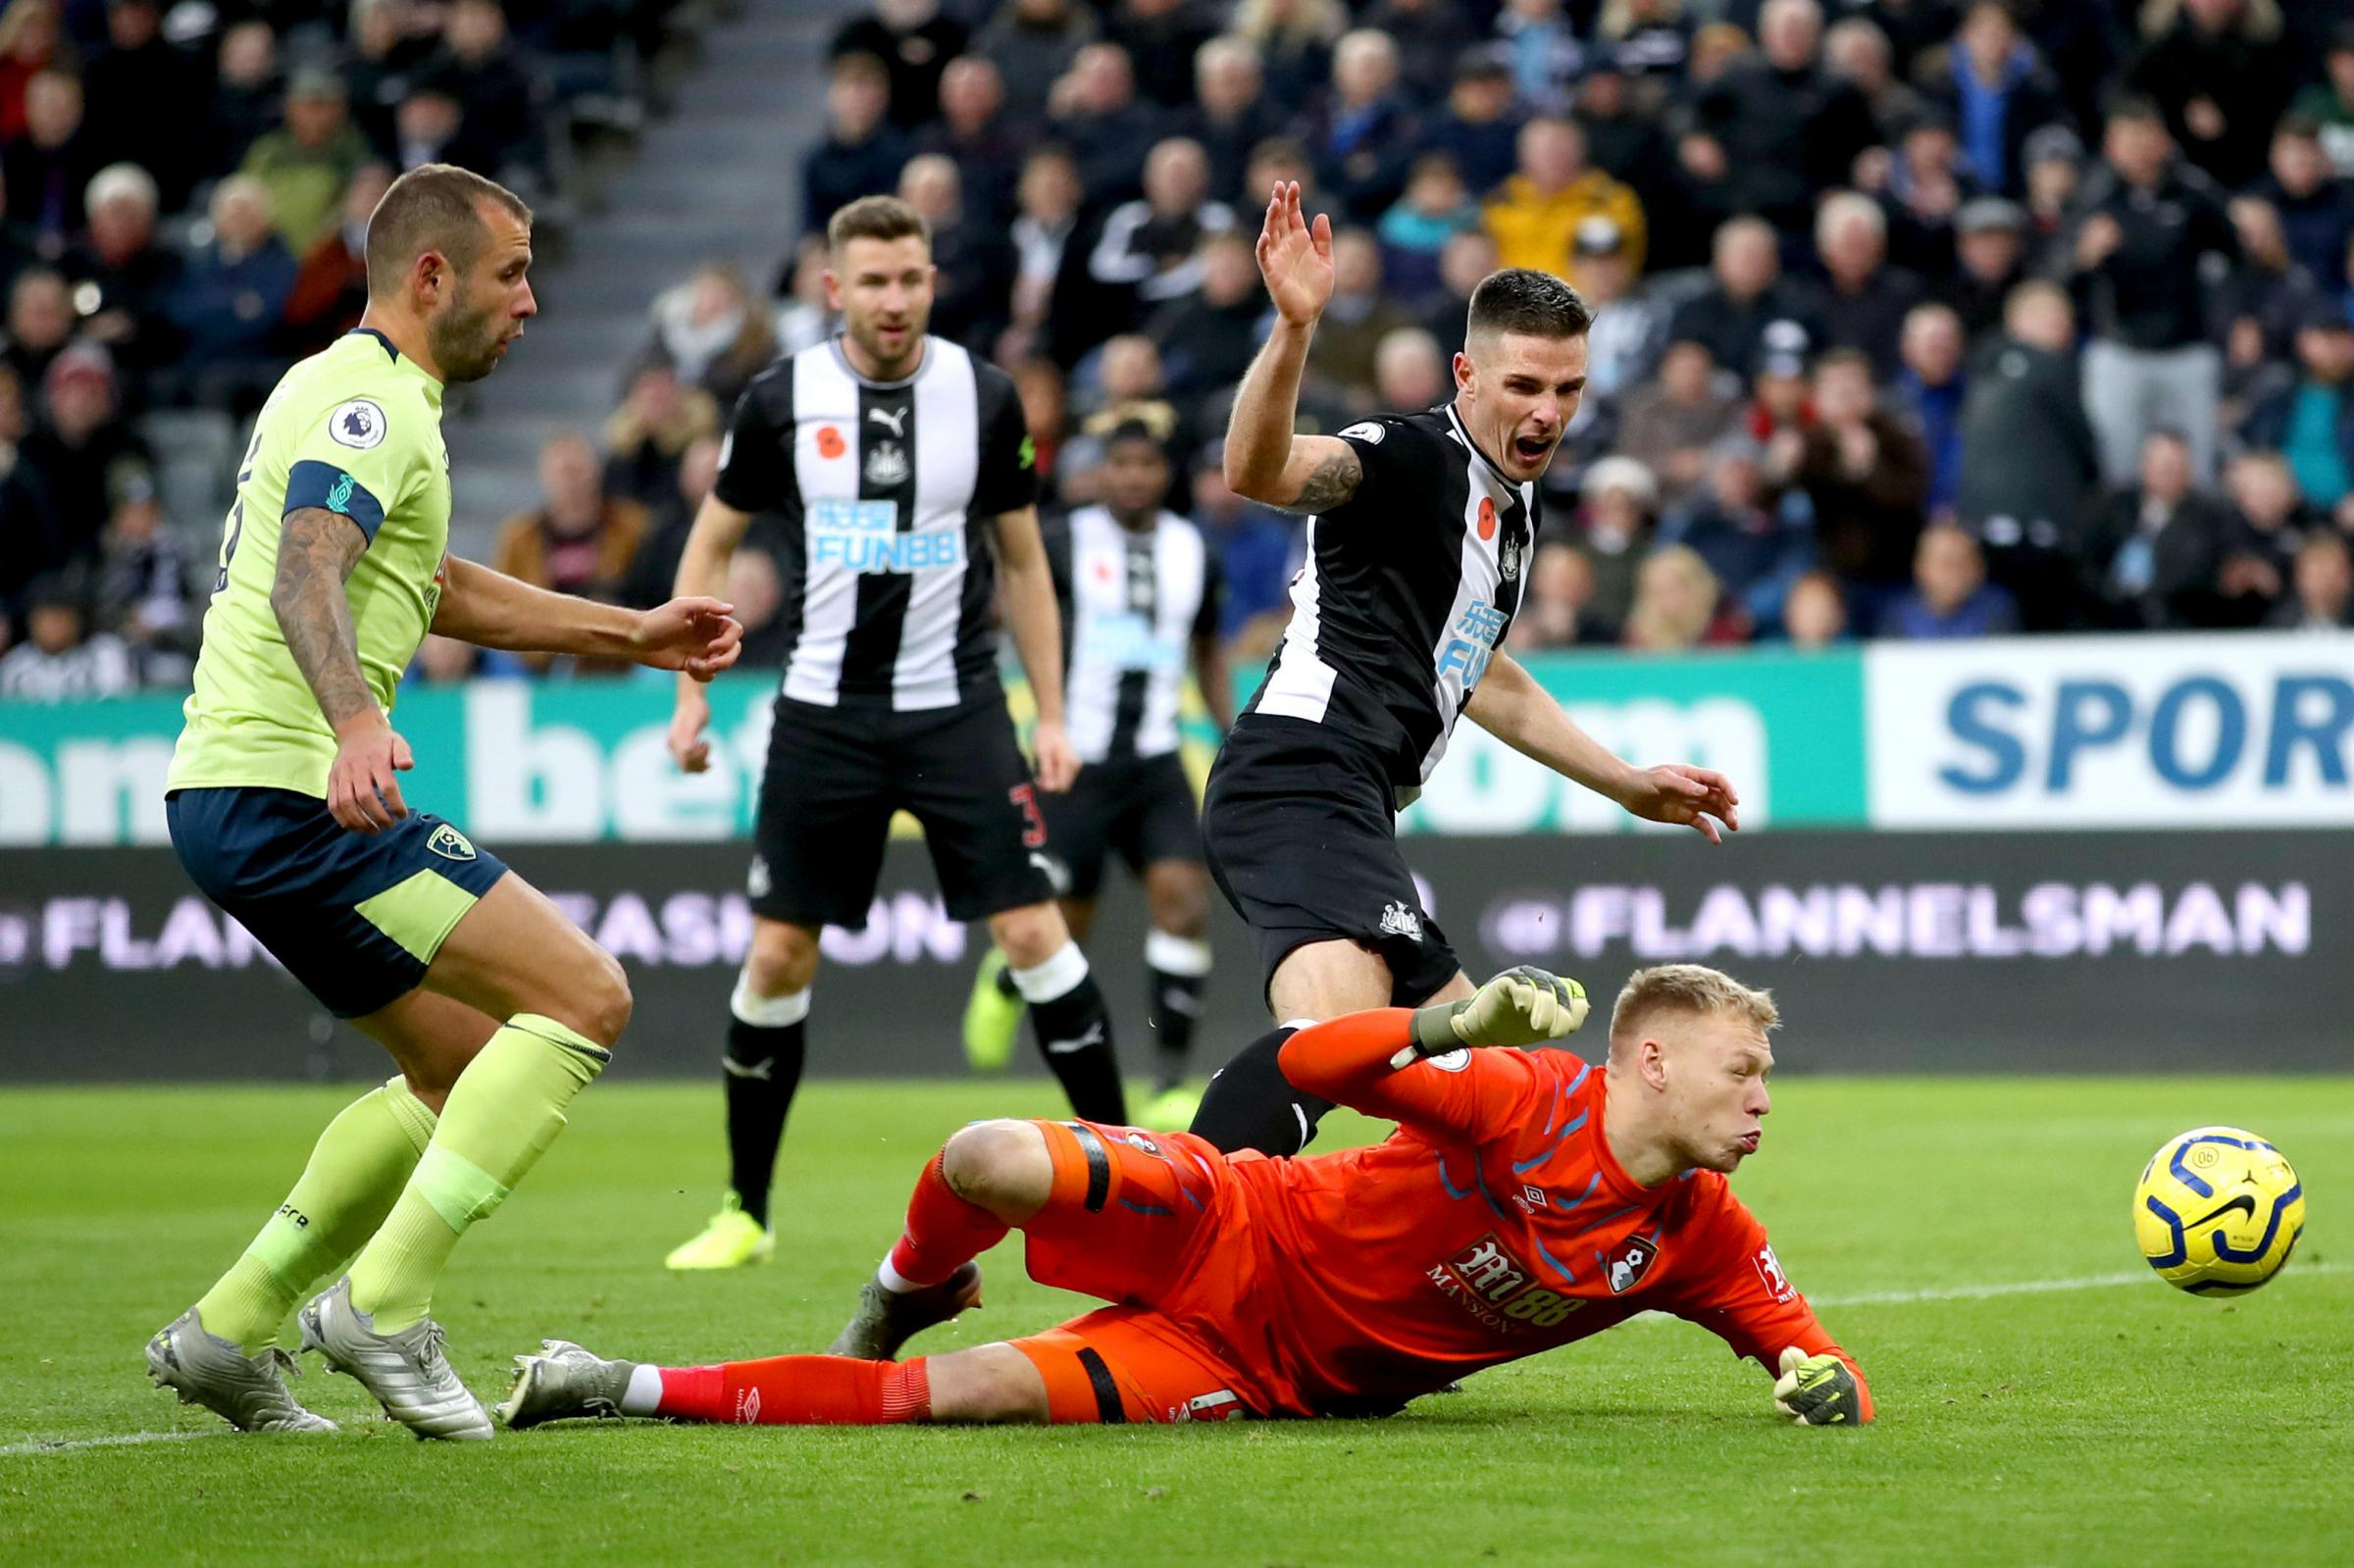 AFC Bournemouth squander early lead to lose at Newcastle